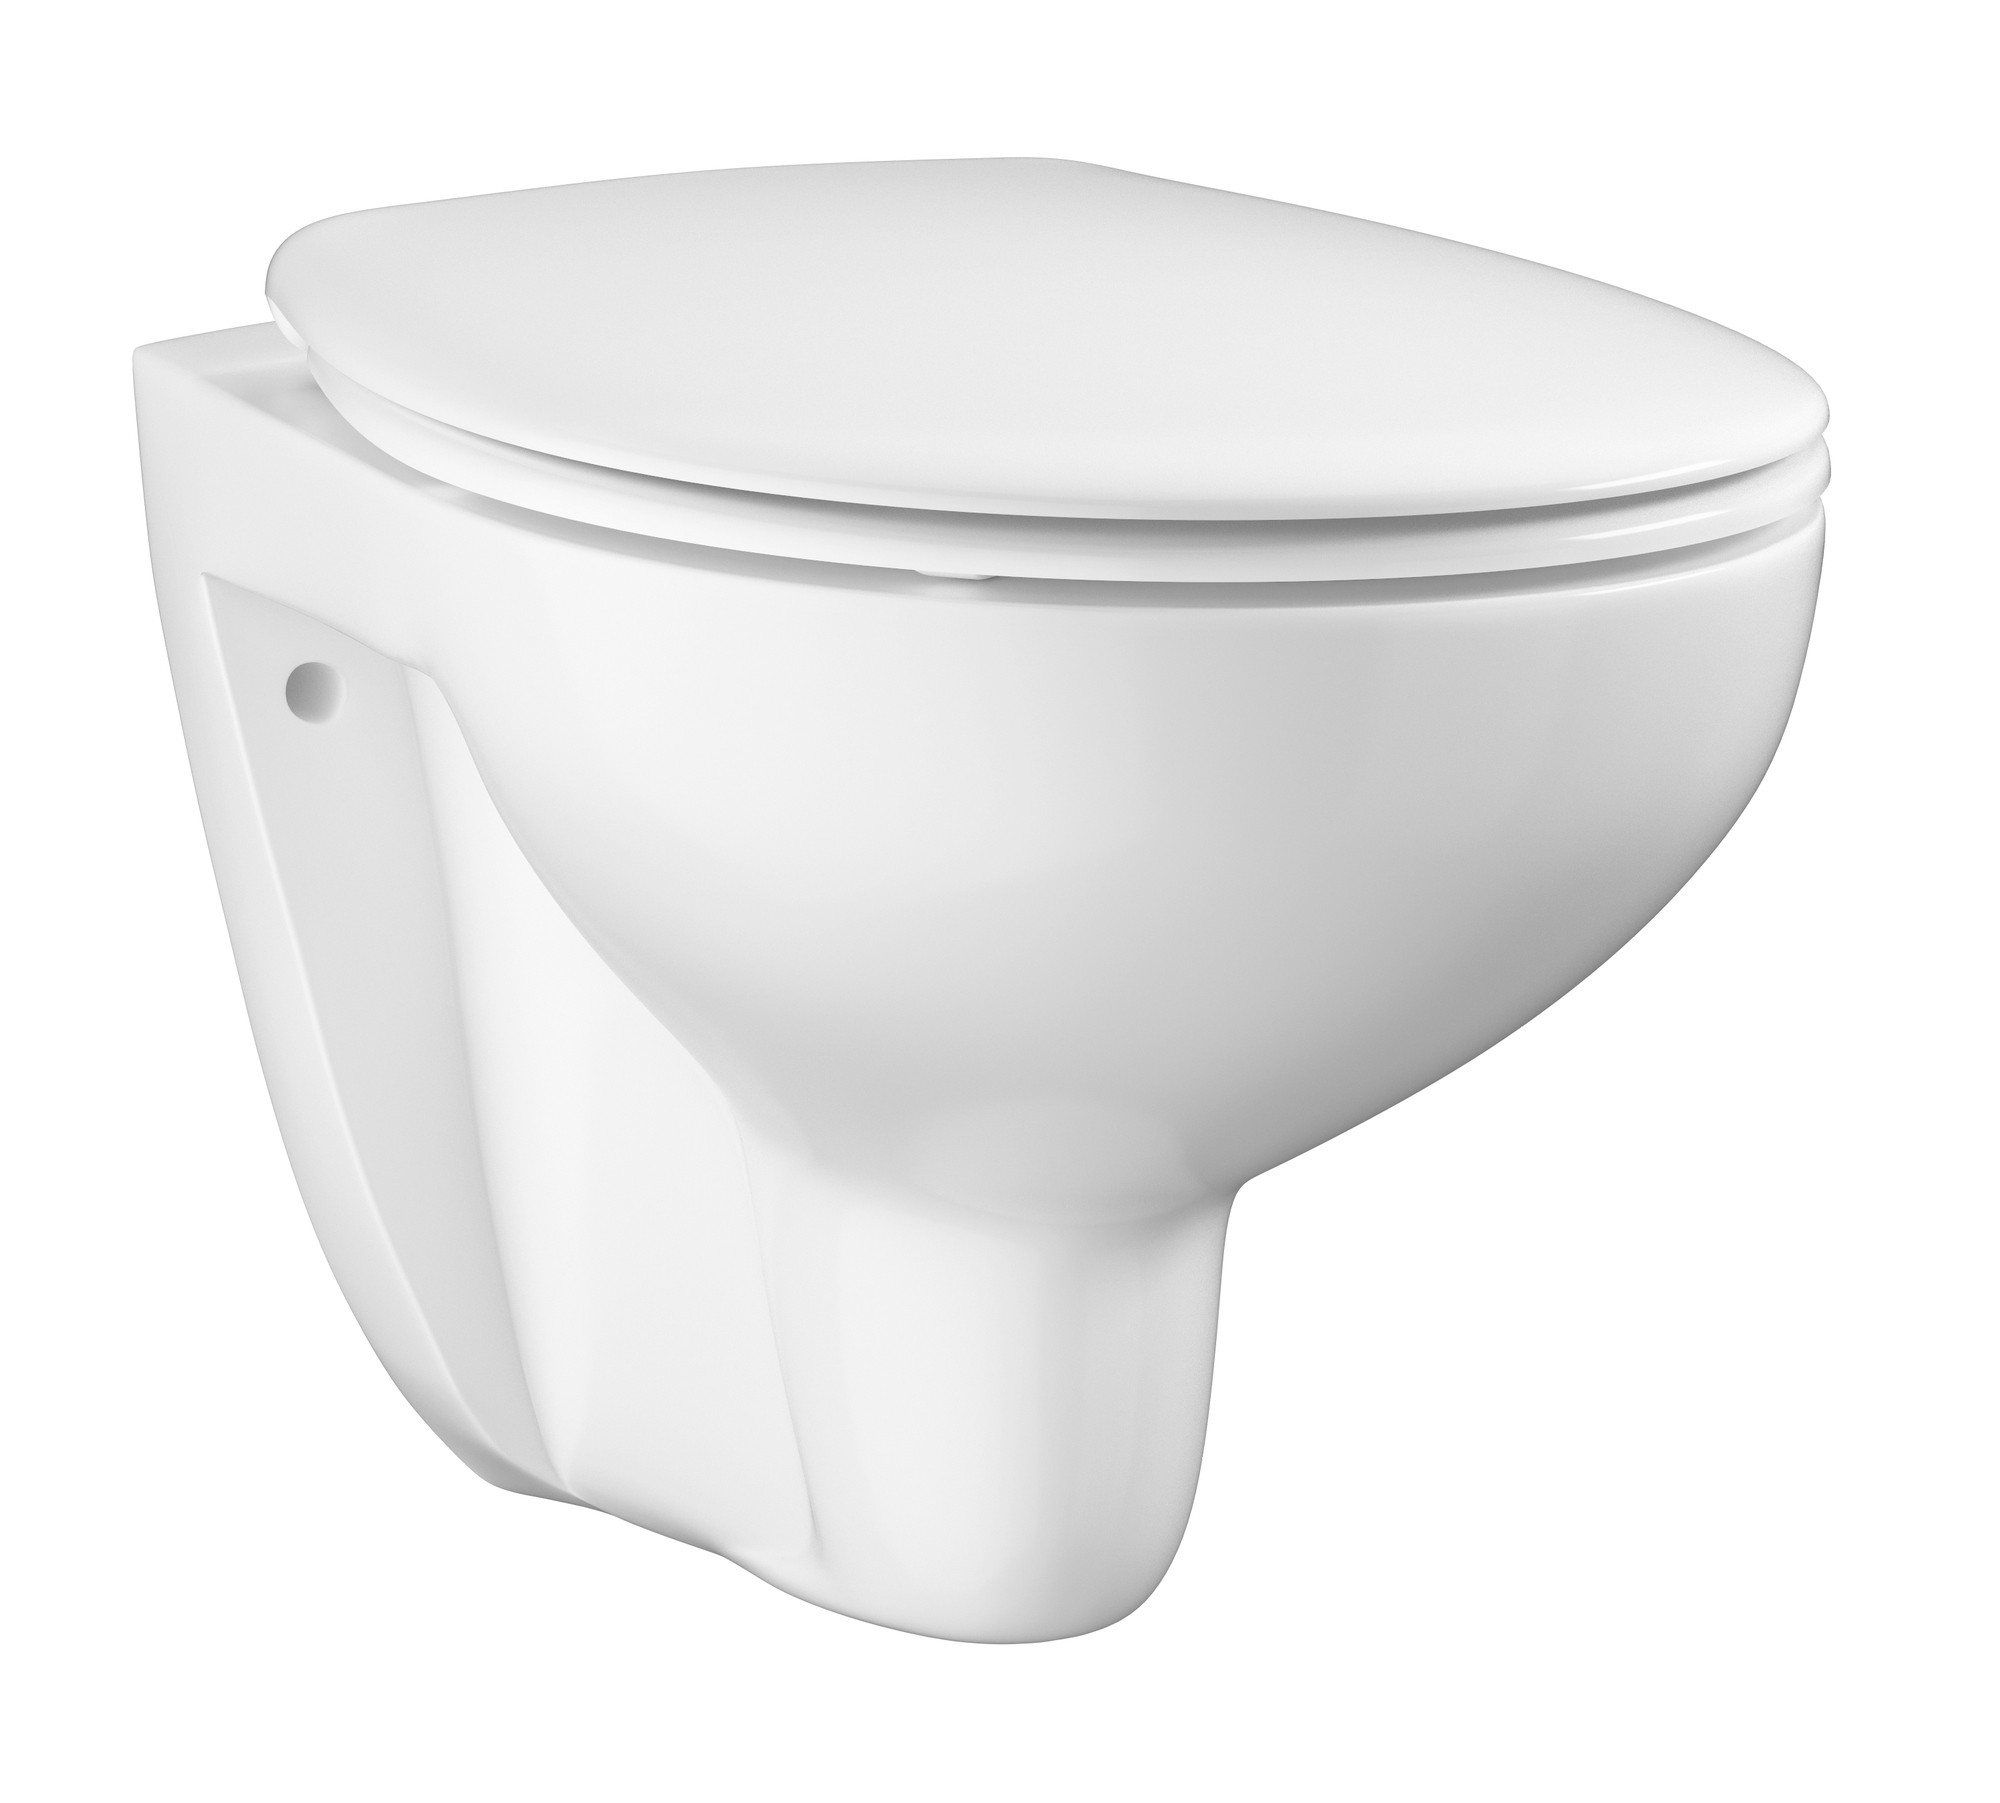 08c35ea5e9d GROHE Bau Ceramic Wall-mounted washdown toilet SET without flushing ...